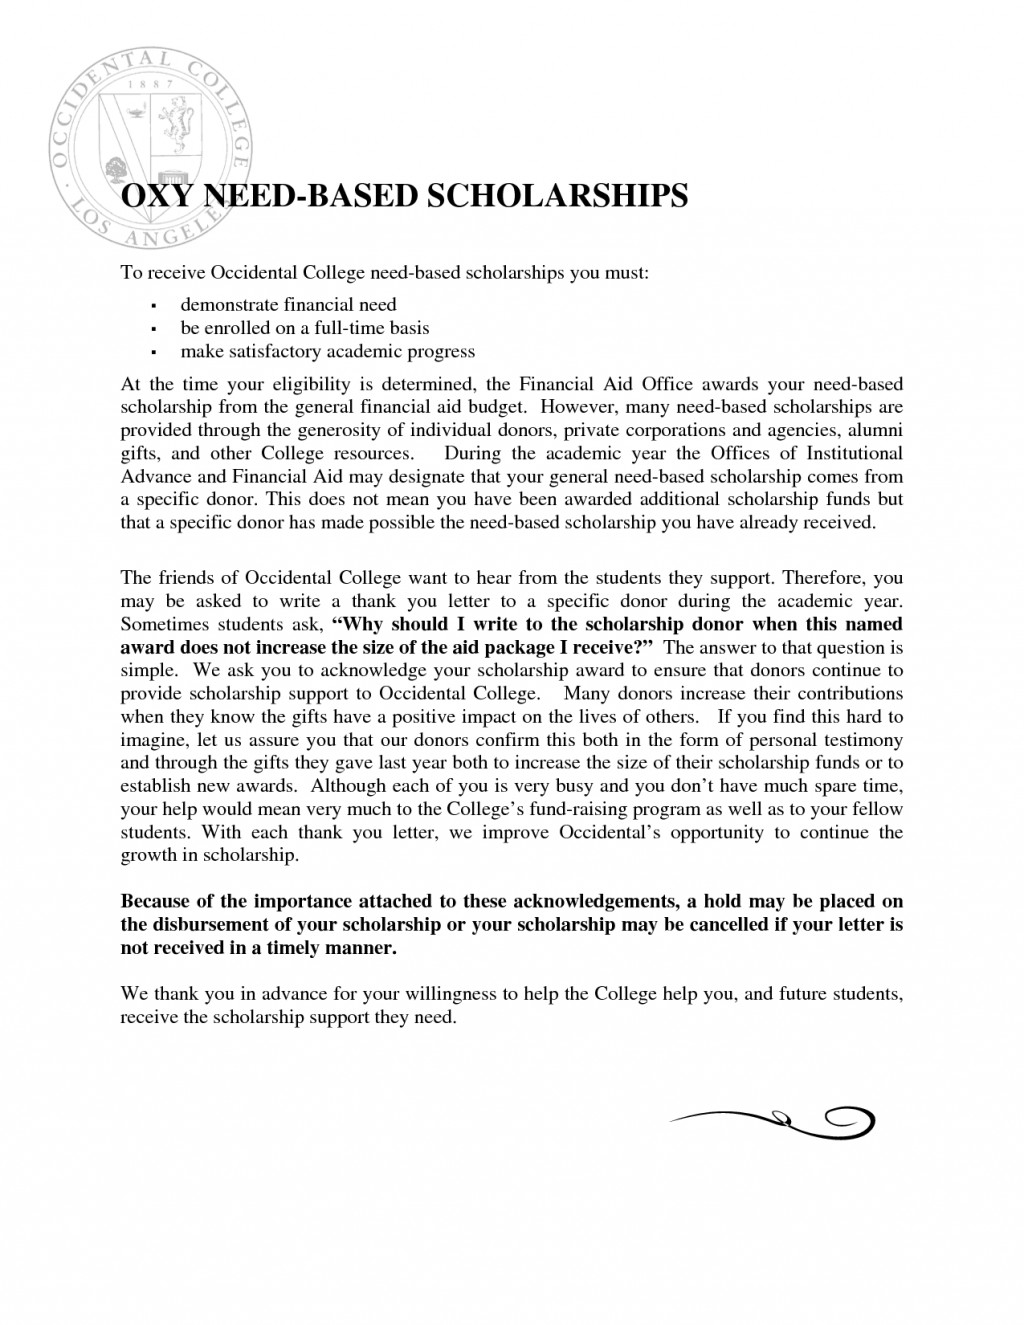 003 Cover Letter Scholarships That Require Essays Resume Daily Colleges L Essay Dreaded Canadian Don't 2019 Need Large